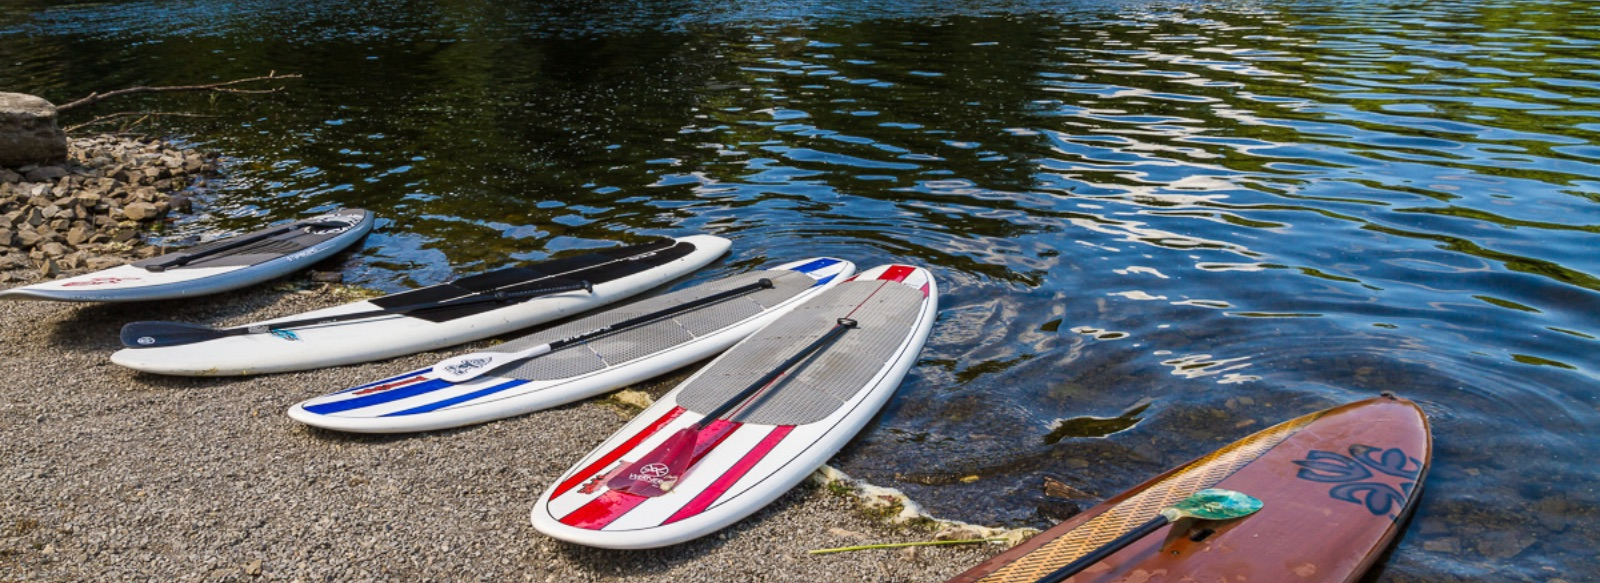 Paddleboards sitting on the shore of a lake